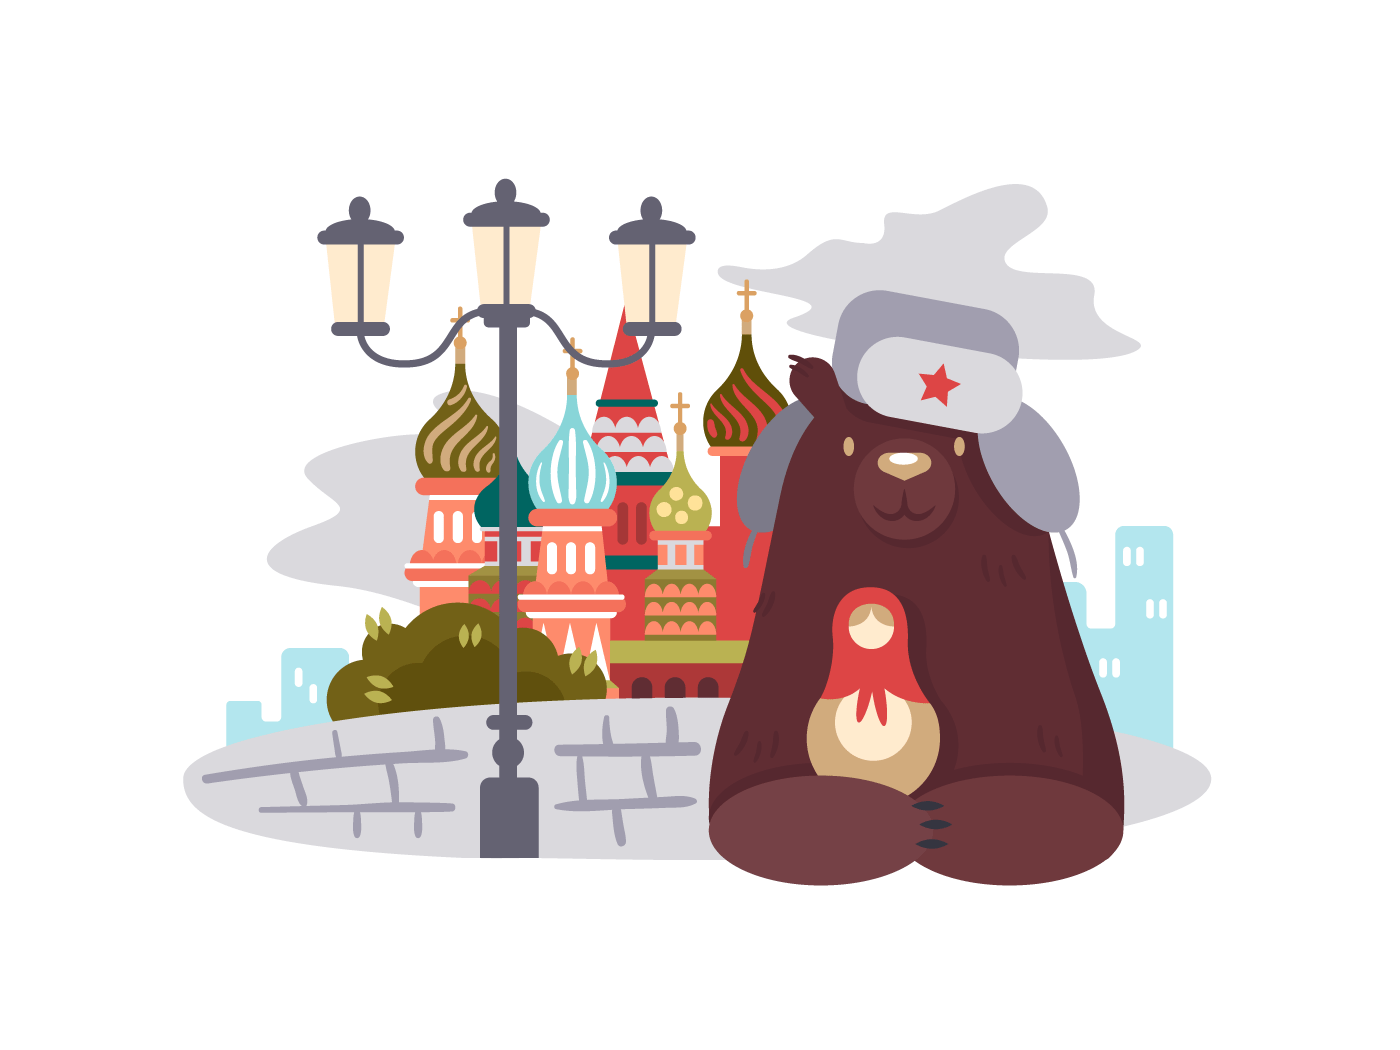 City of Moscow illustration